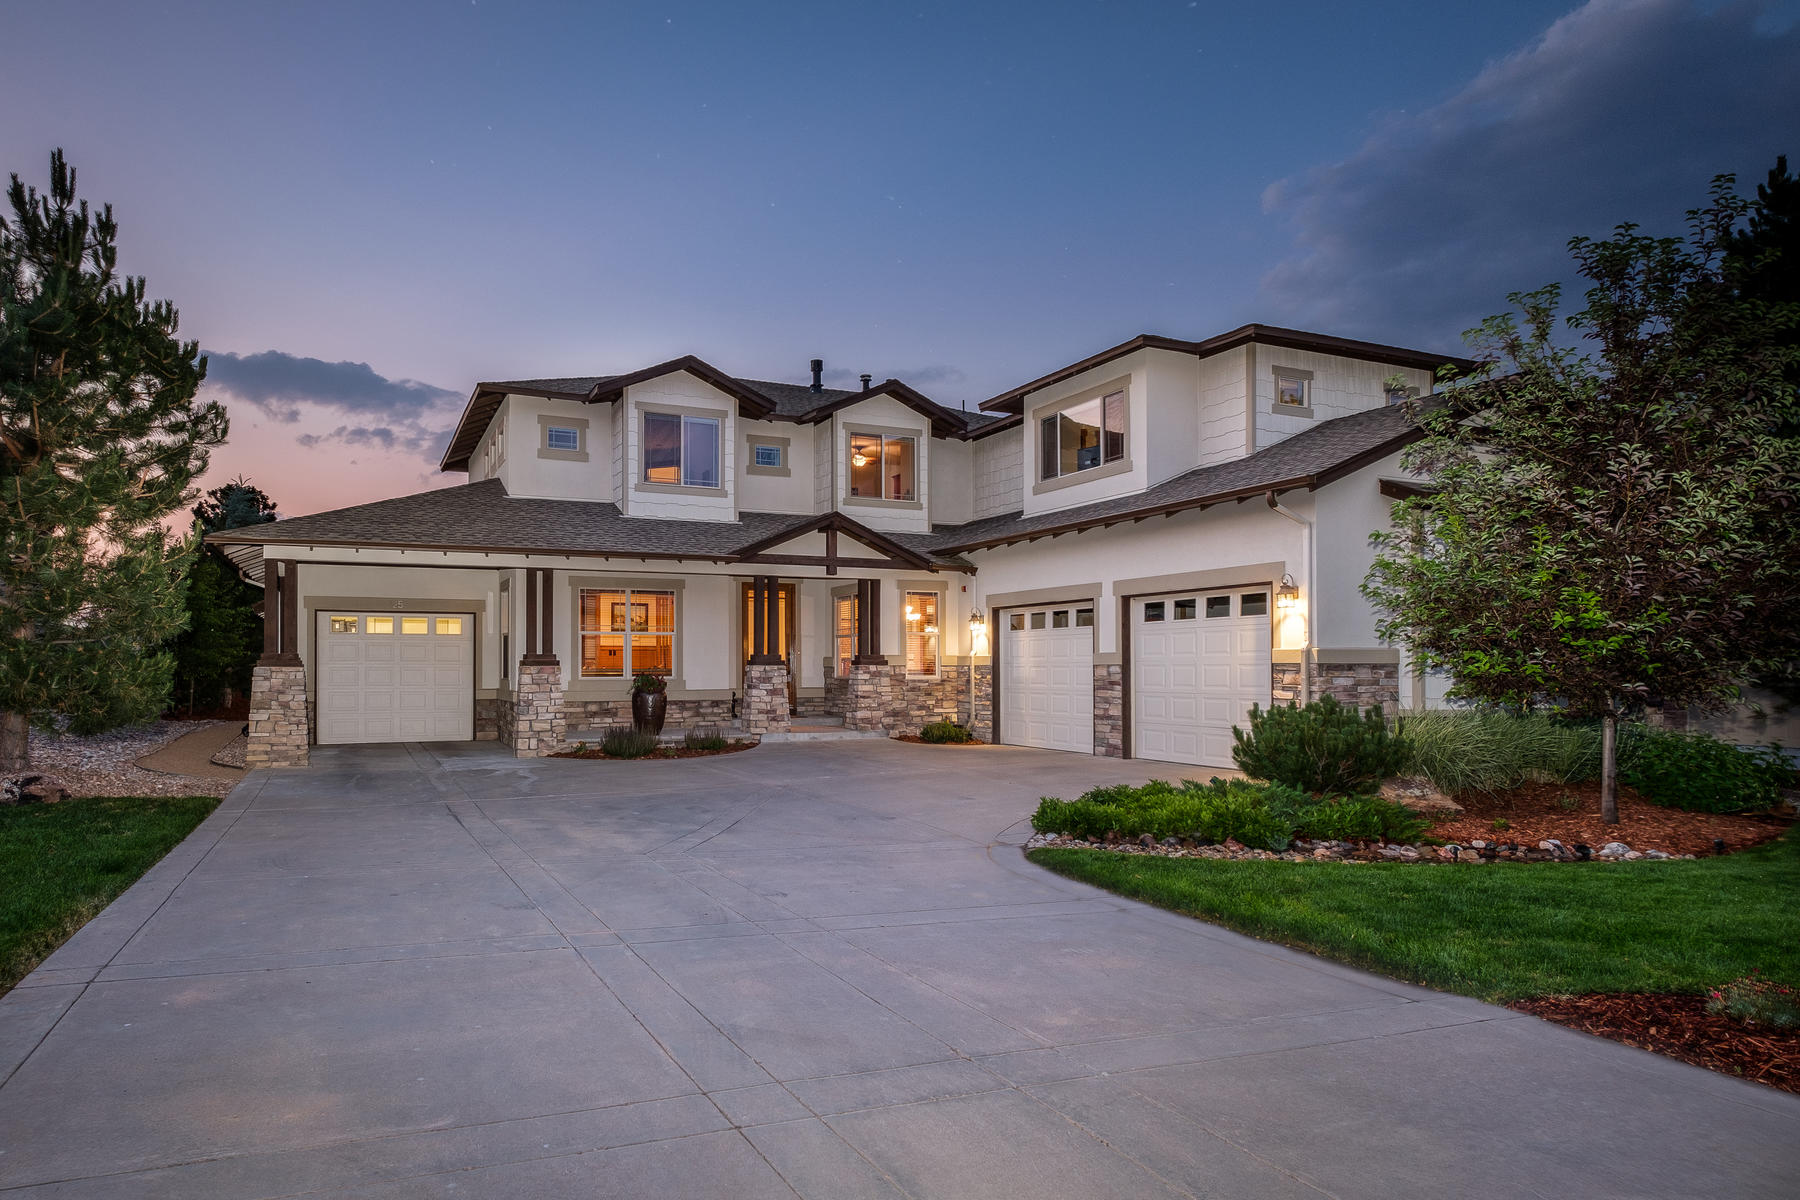 Single Family Home for Sale at This spectacular home is your Colorado dream come true. 1251 Buffalo Ridge Rd Castle Pines, Colorado, 80108 United States